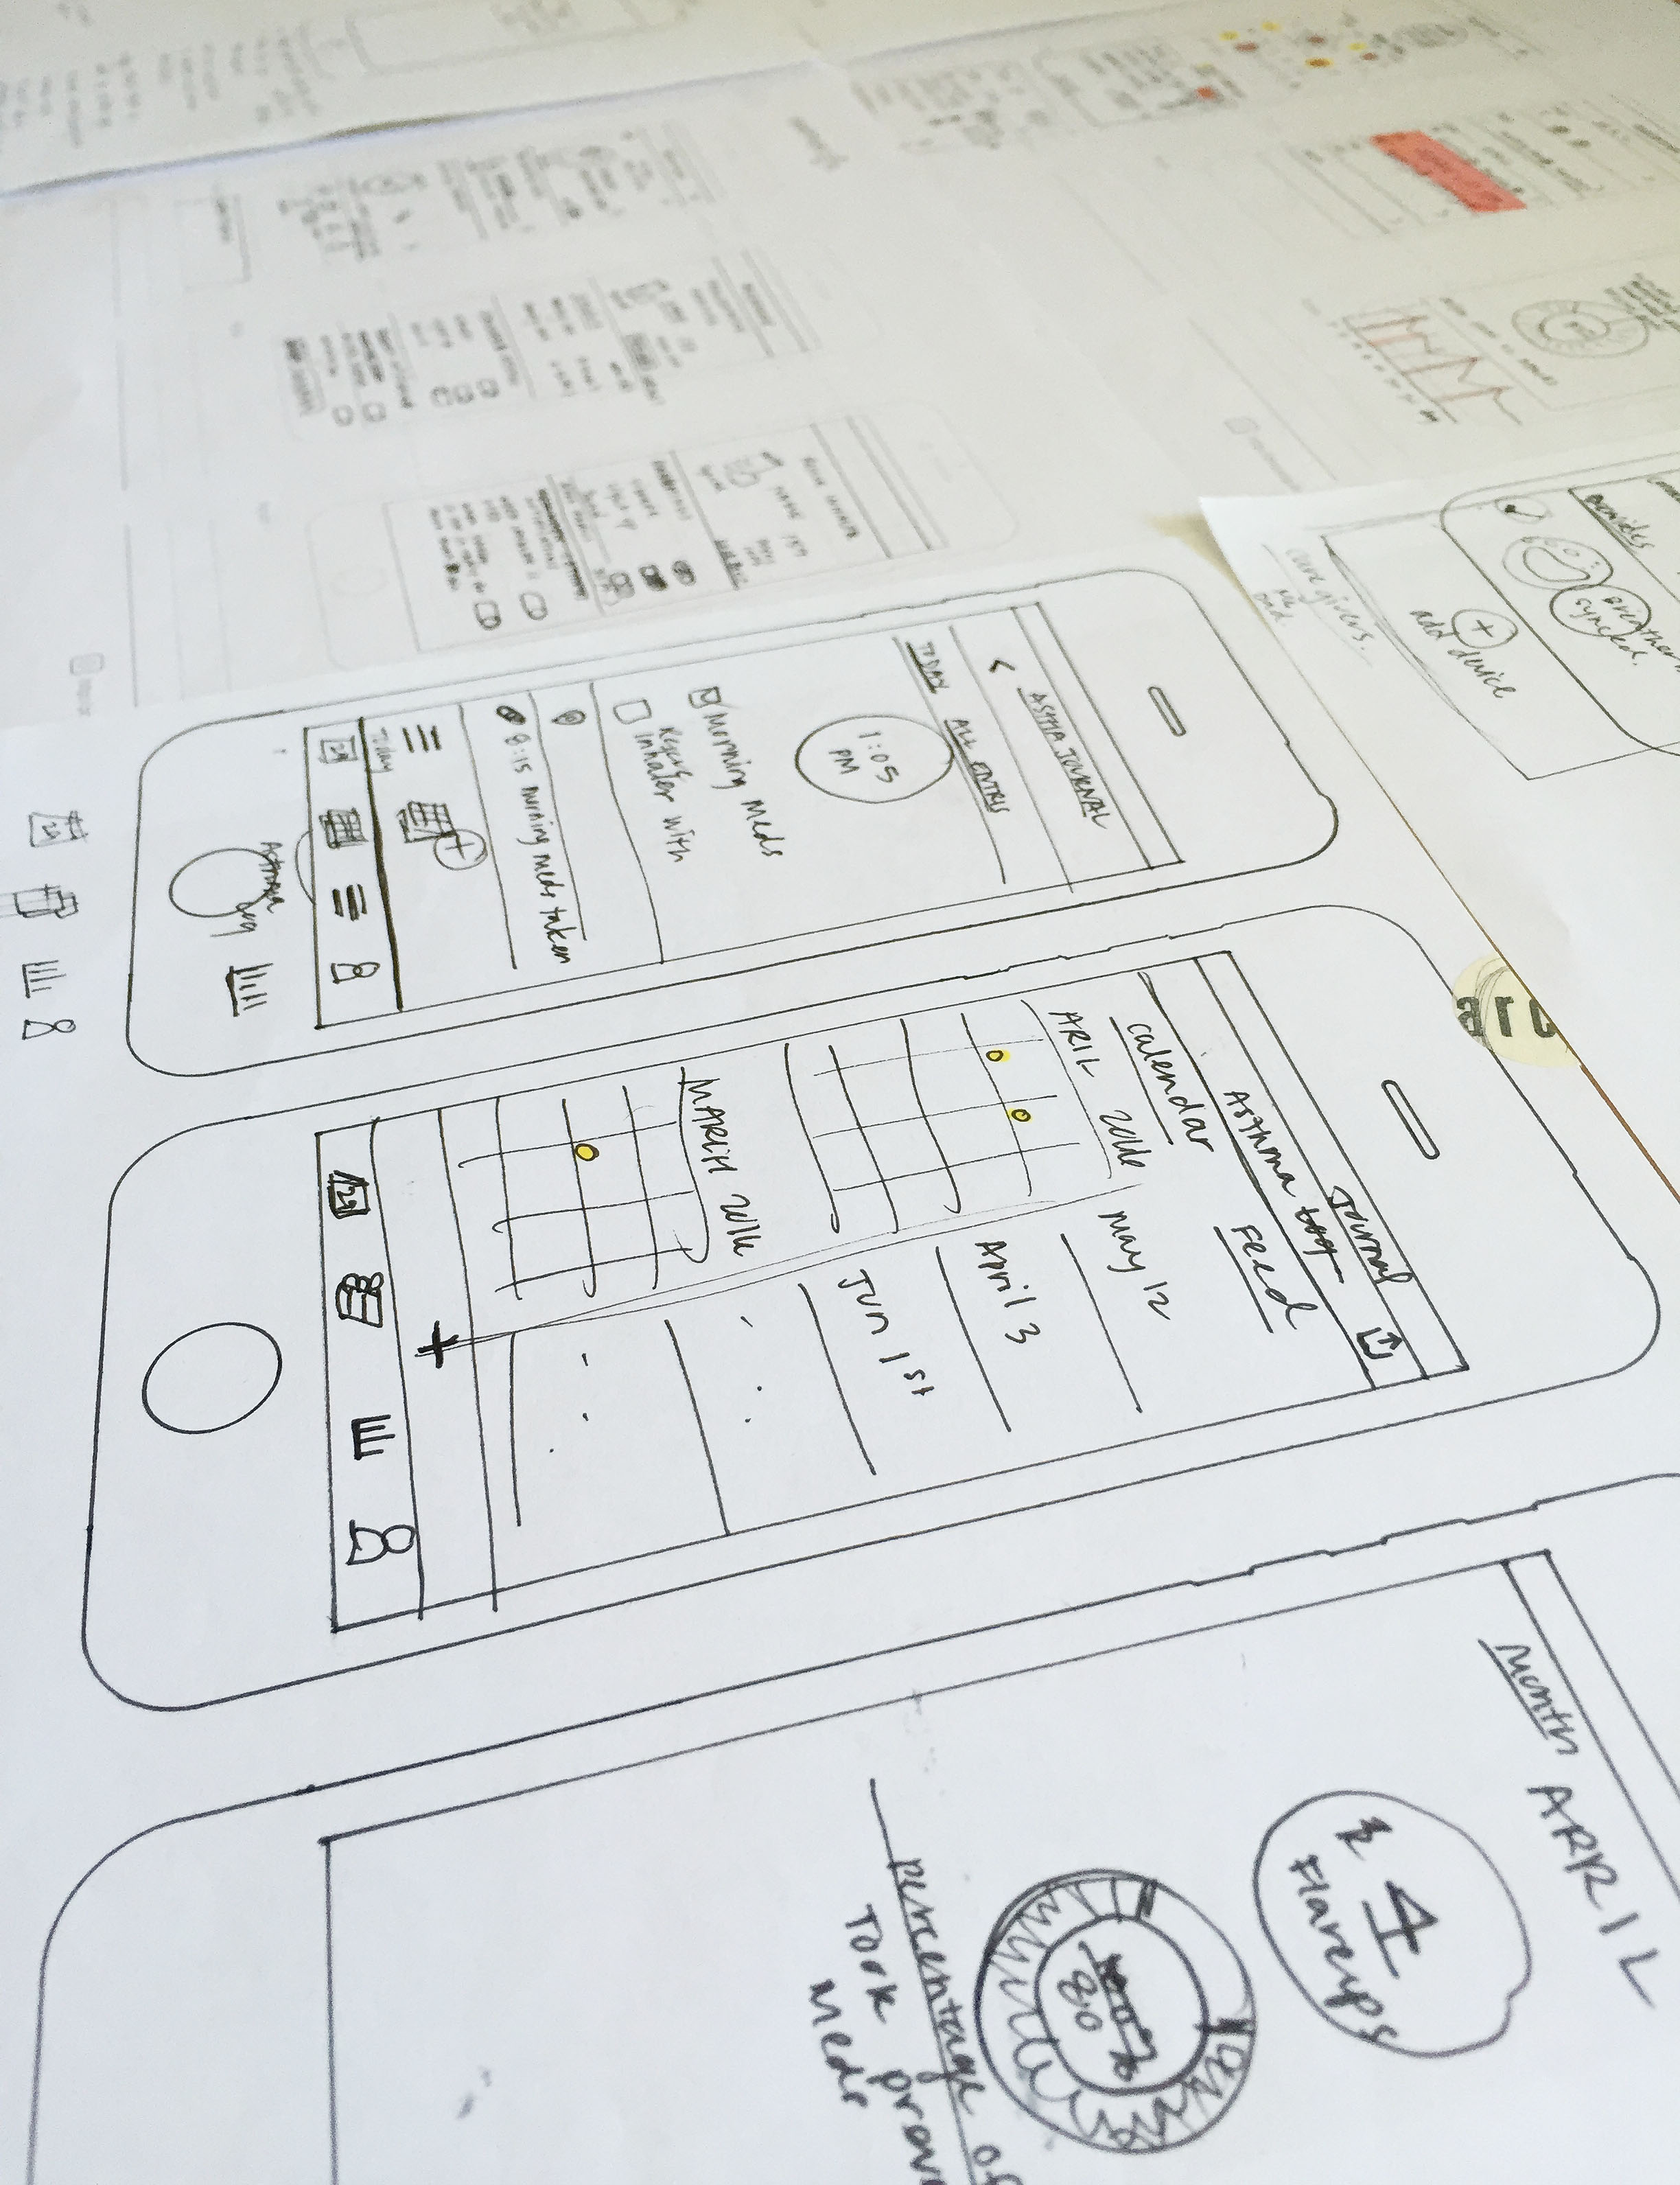 SKETCHING:  I used sketching to test out different layouts for a mobile application, which helped me to narrow down the functional elements essential a minimum viable product